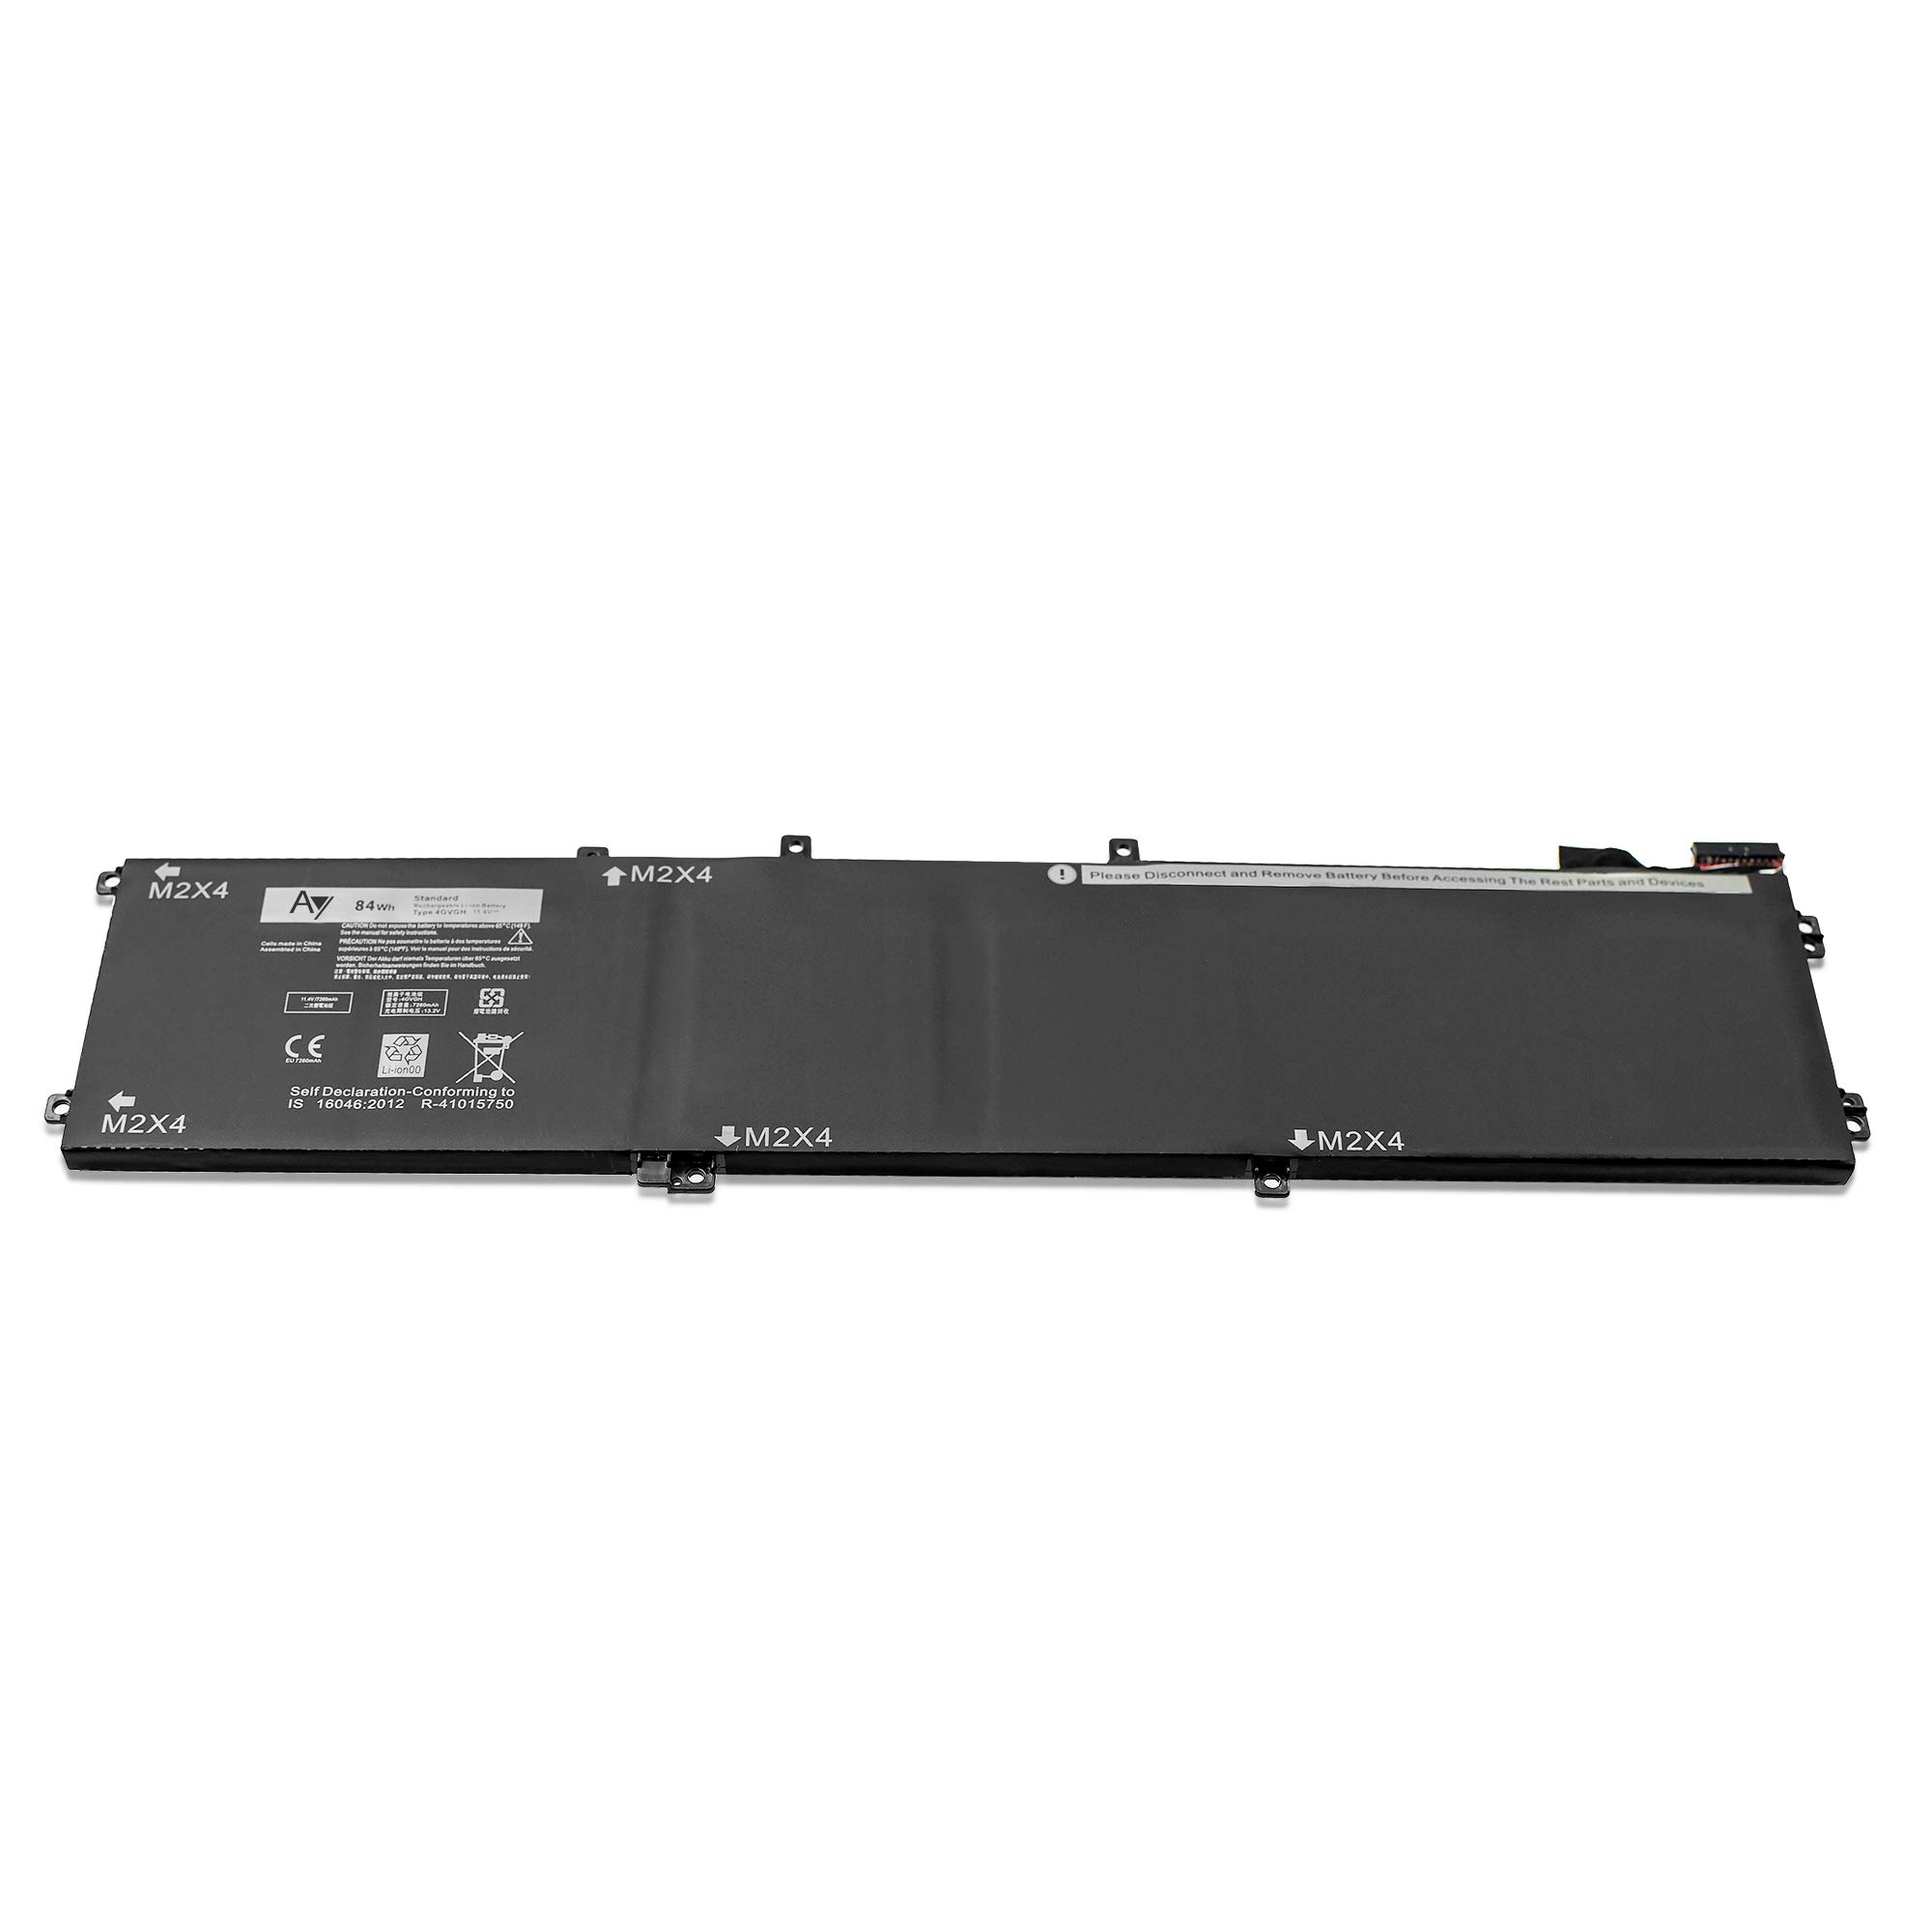 AY 4GVGH Battery [11.4V / 84WH]. AY High-Performance Replacement Laptop Battery Compatible Dell Precision 5510, Dell XPS 15 9550 Series, Fits 4GVGH 1P6KD by AY (Image #3)